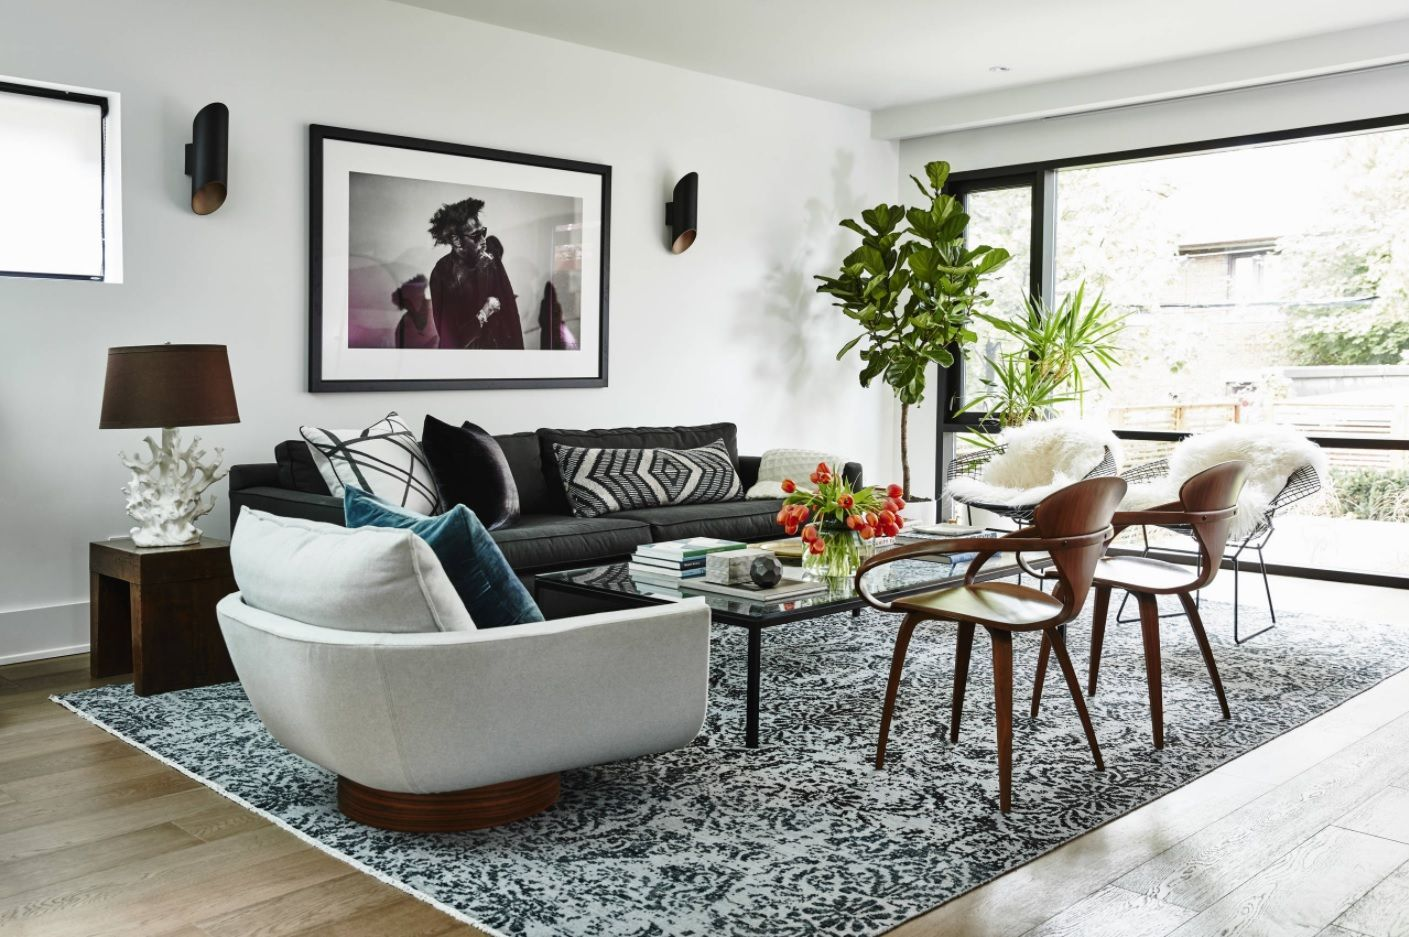 Living Room Layout Design & Decoration Ideas. Genuine Classic in the light finished room